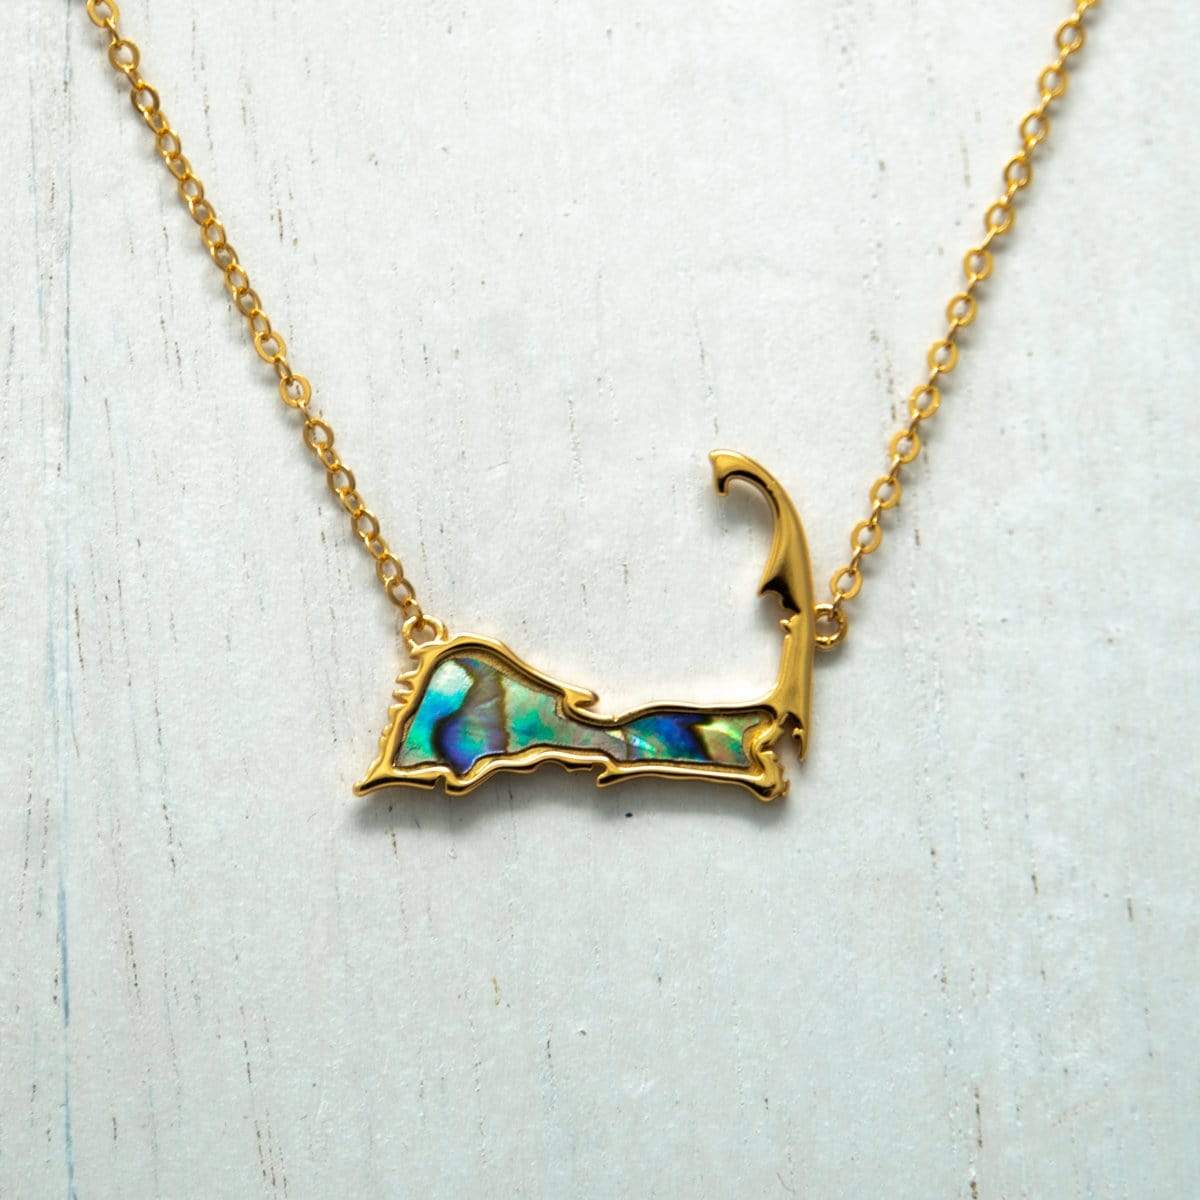 Gold Cape Cod Necklace with Abalone Inlay - front